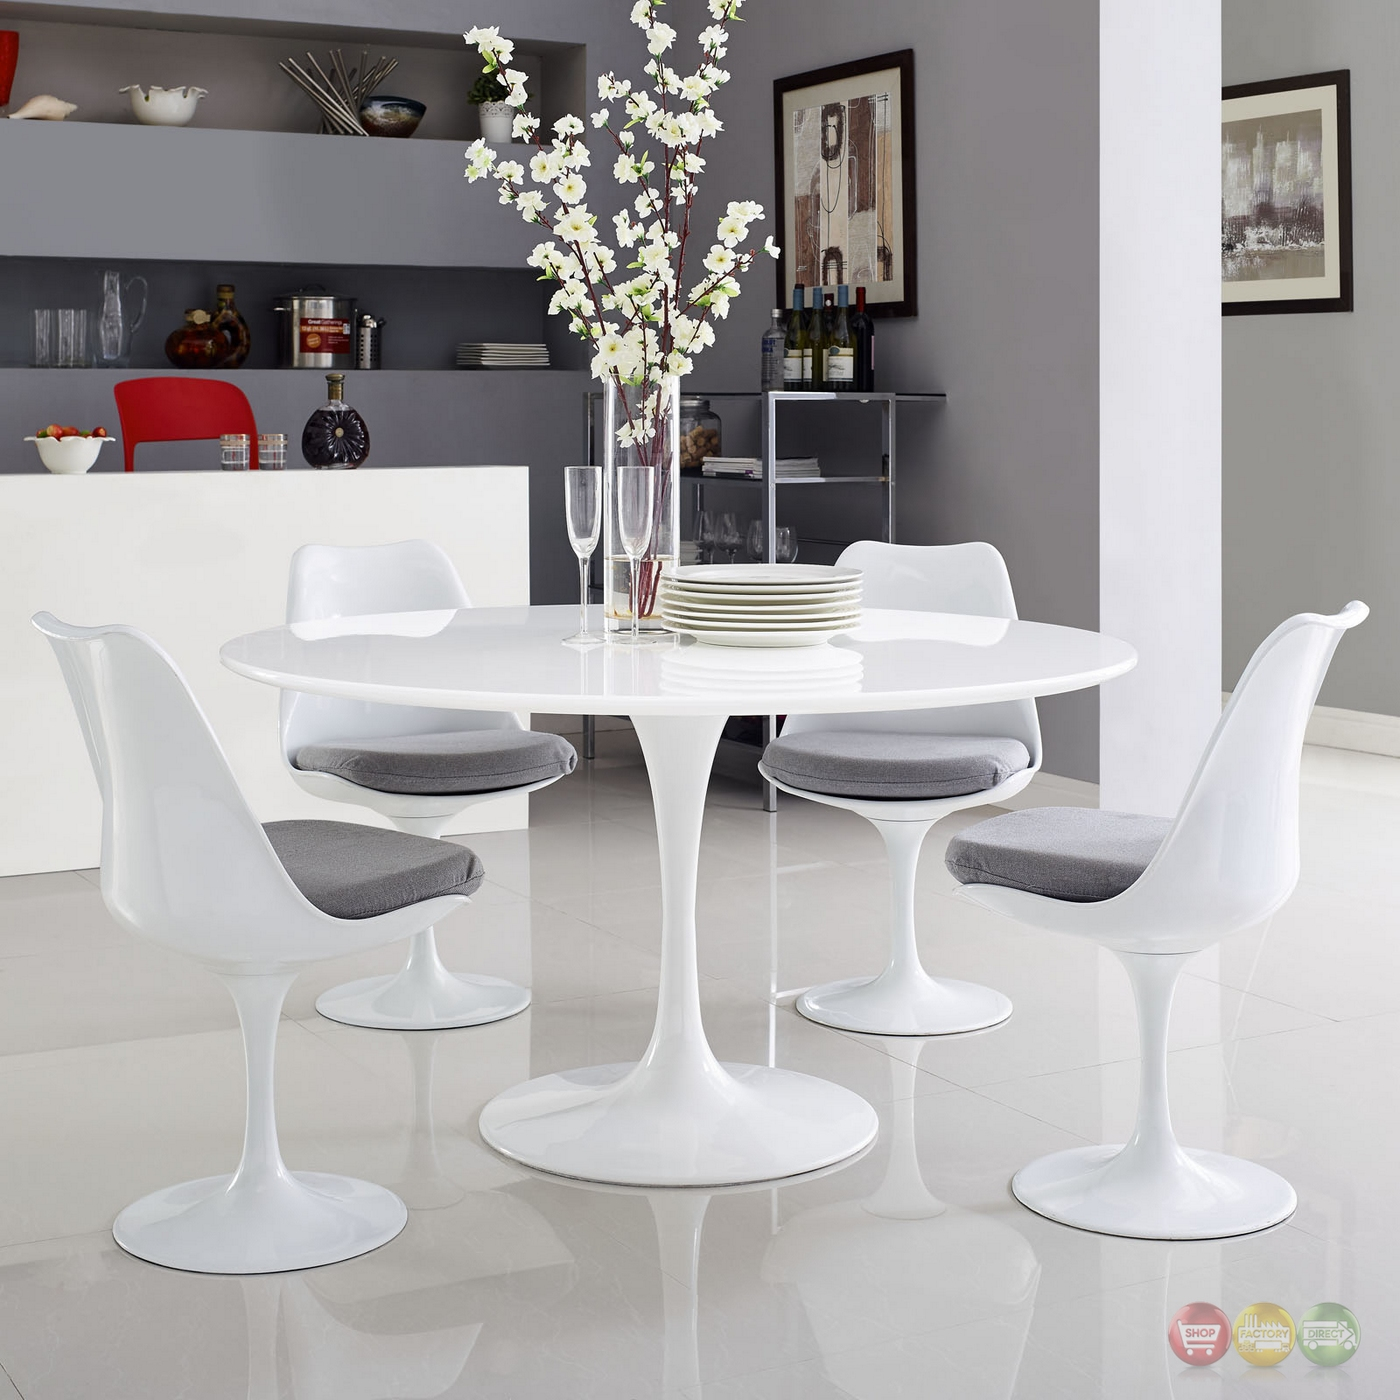 """Table Ronde Bois Blanc: Lippa Modern 54"""" Round Wood Top Dining Table W/ Lacquered"""